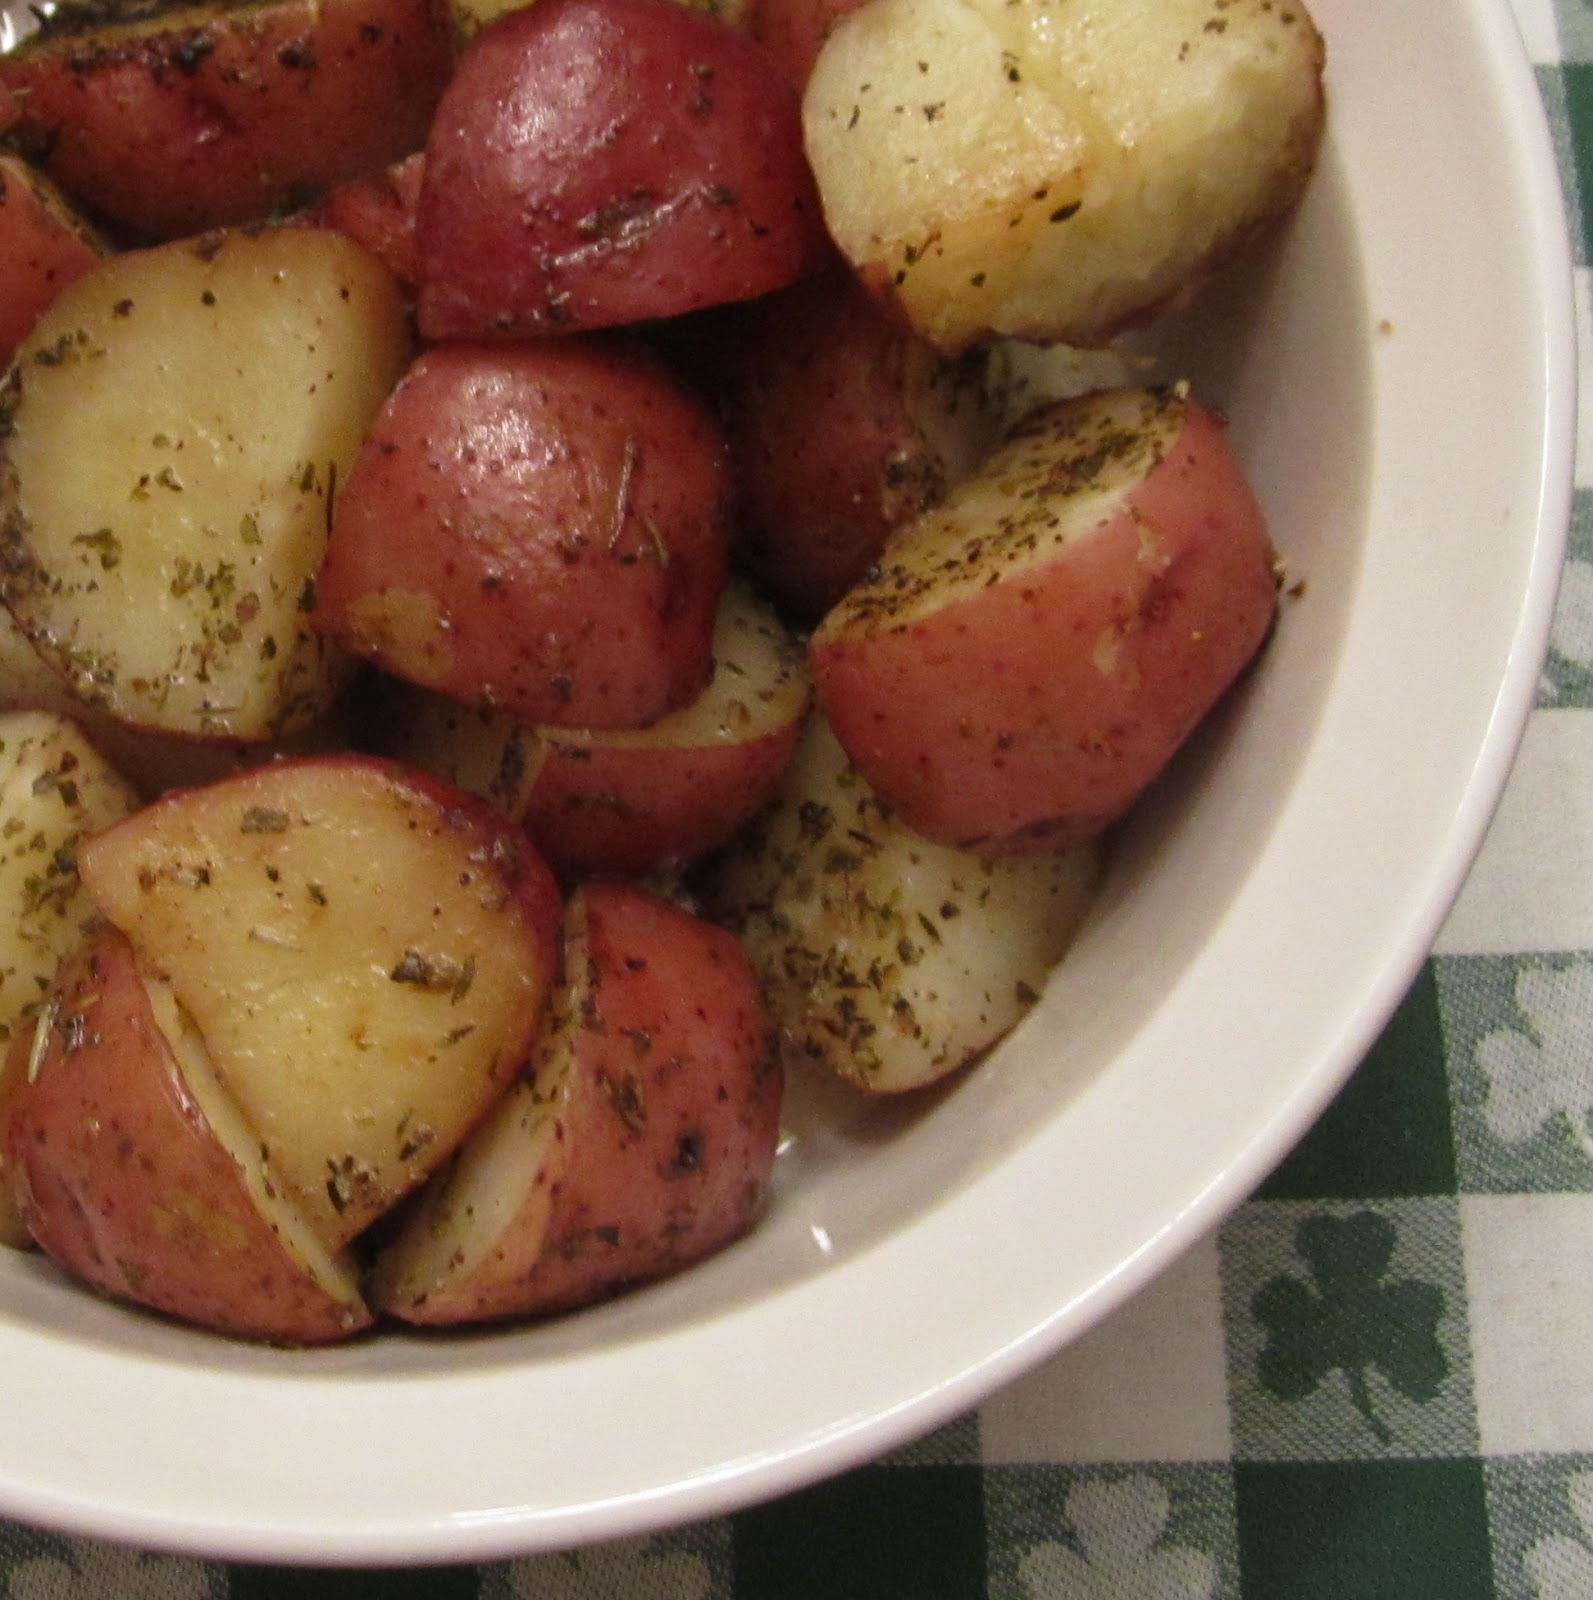 ... oven roasted red potatoes easy to make oven roasted red potatoes